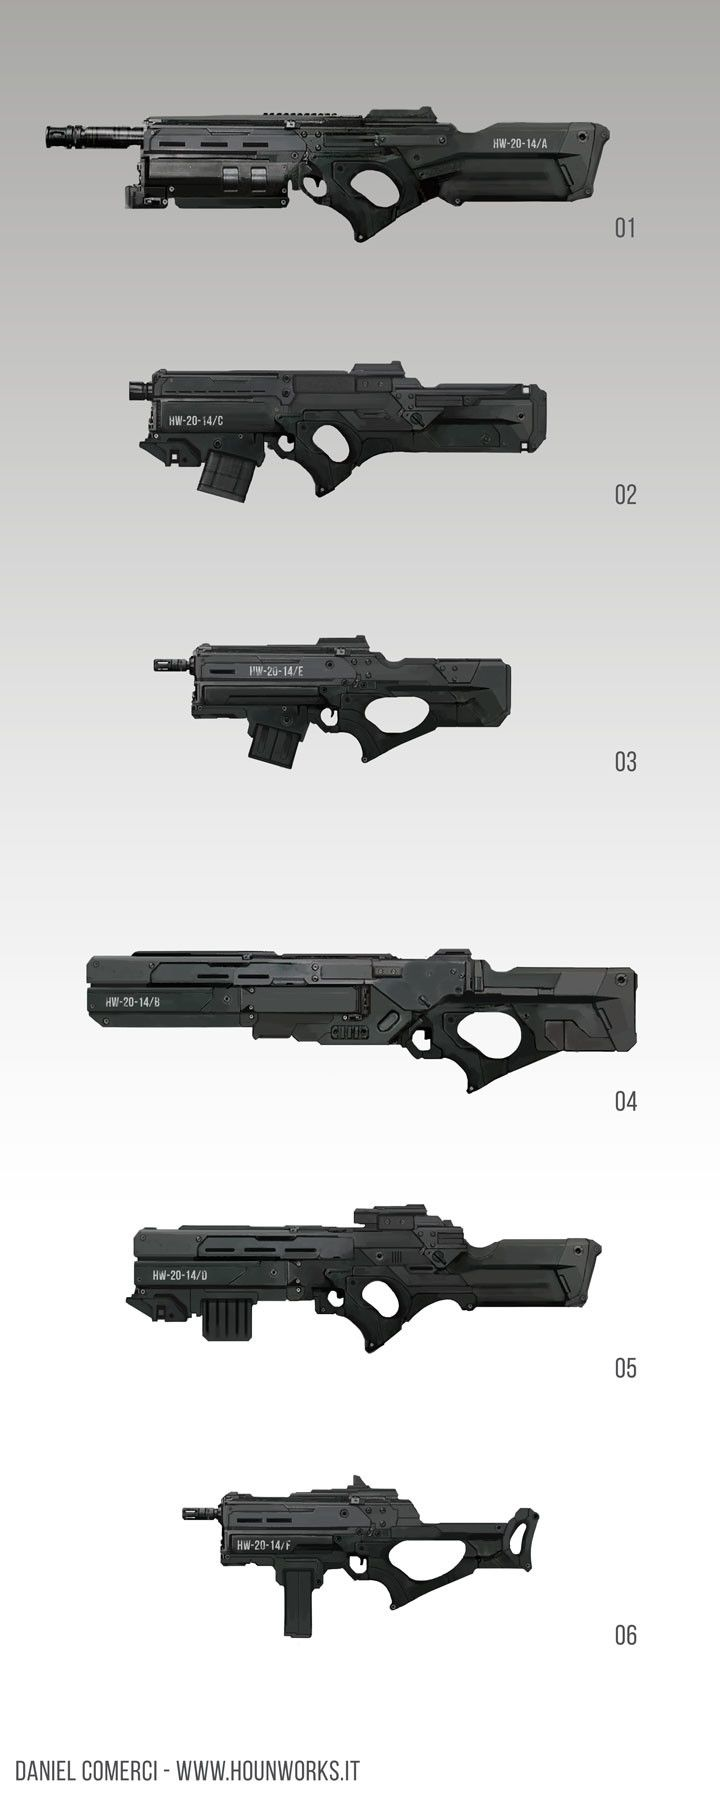 ArtStation - Weapon Props Concepts, Daniel Comerci